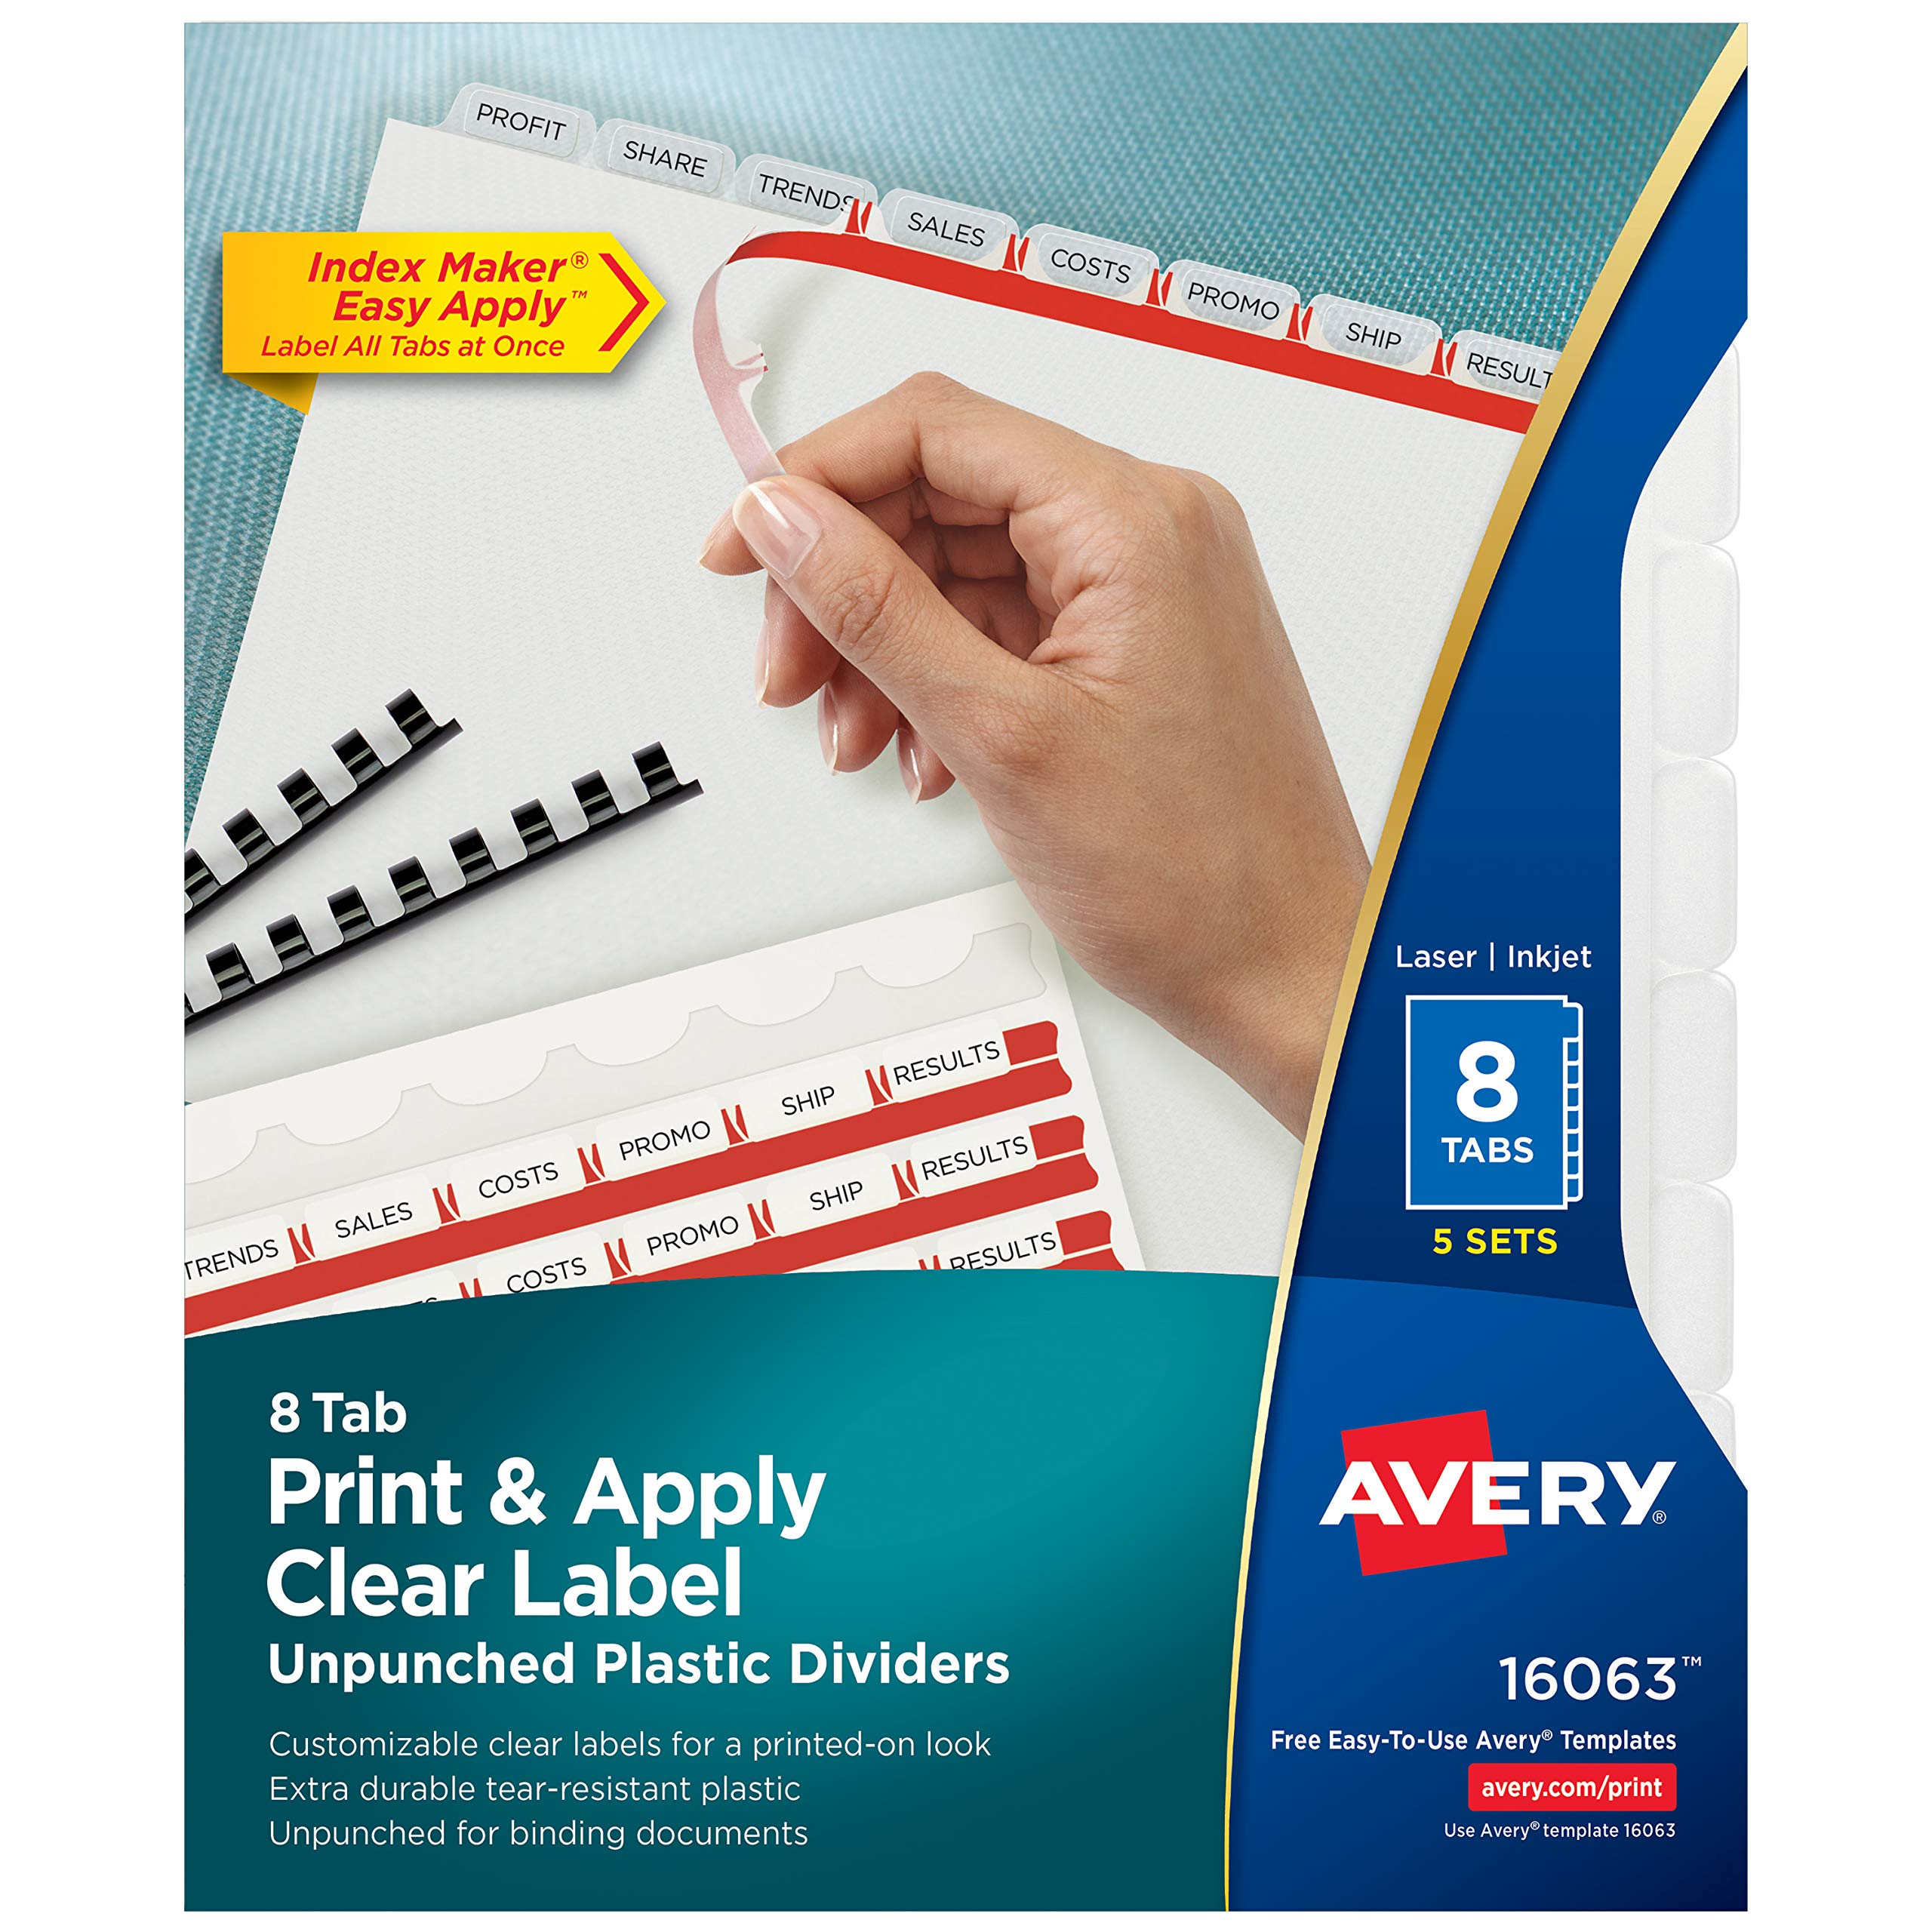 Avery 8-Tab Unpunched Plastic Dividers, Easy Print & Apply Clear Label Strip, Index Maker, 5 Sets (16062)